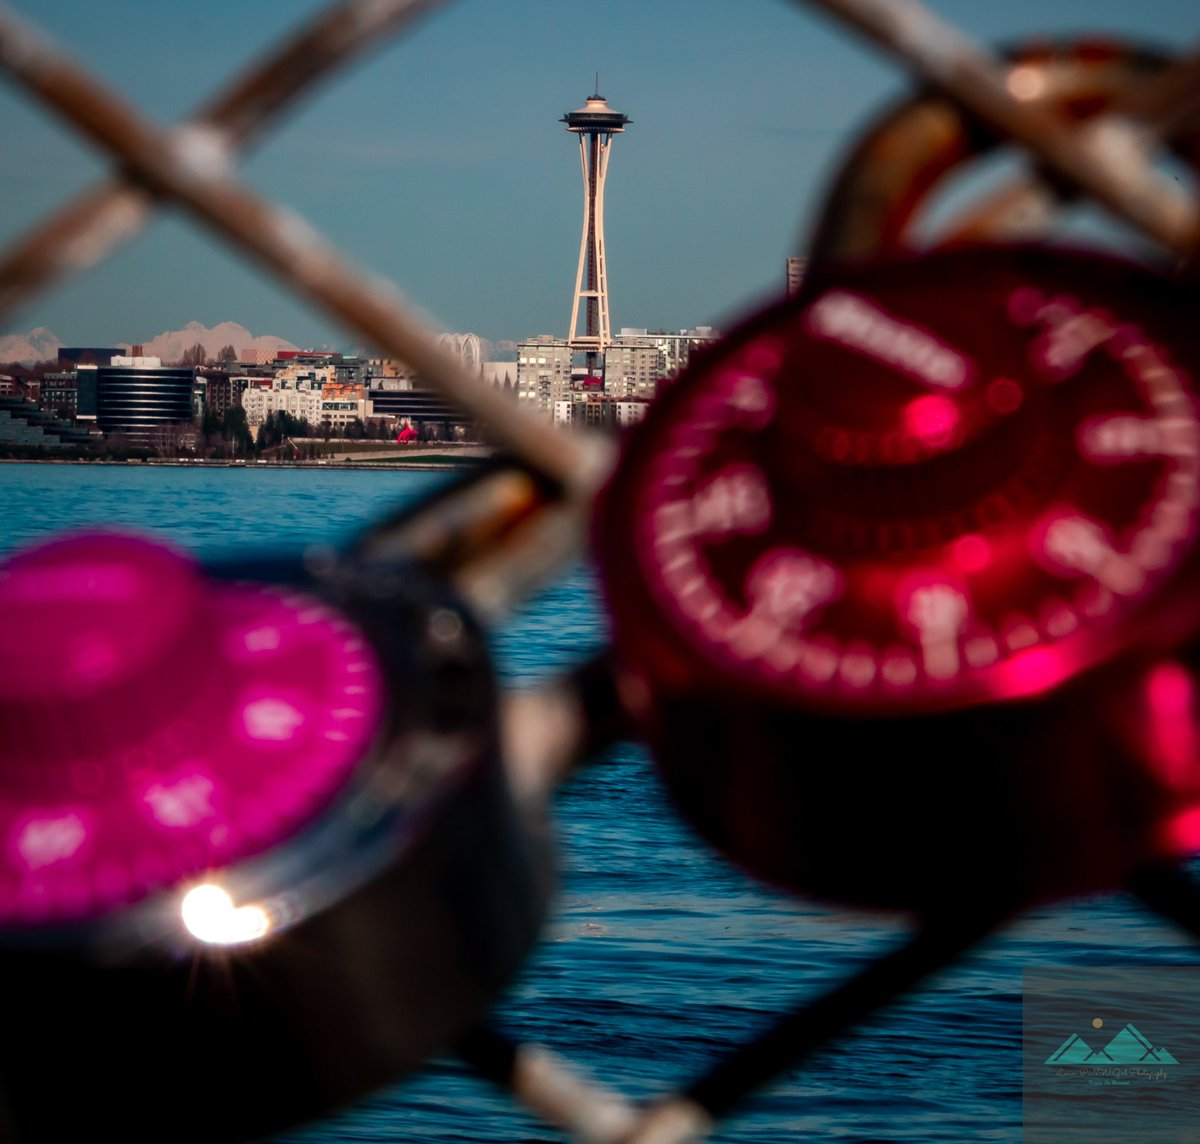 The #PNW has my heart under lock and key   . . . . #washingtonstate #nw #pacificnorthwest #upperleftusa #lockdown2020 #westseattlelife #westseattle #seattle #seattlewashington #canonphotography #canon #canonusa #canonphotographerpic.twitter.com/lxShkREBXo  by Lovin PNW Girl